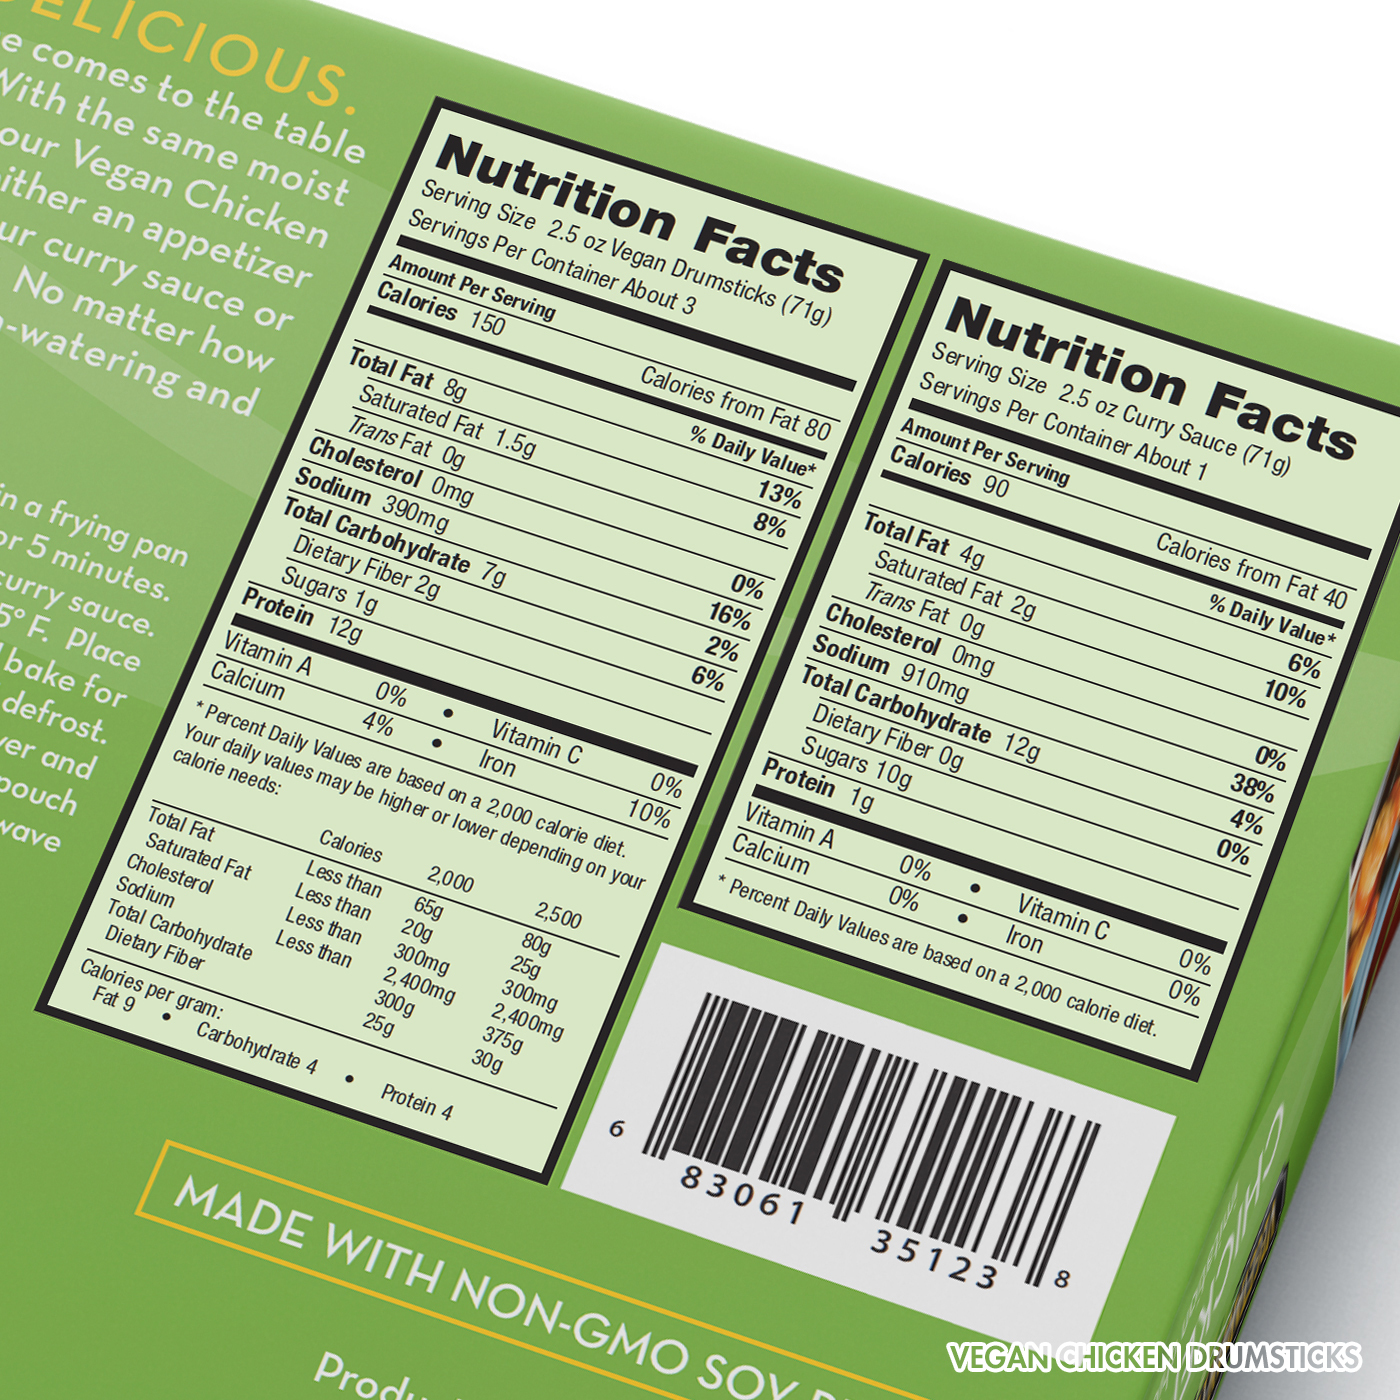 Vegan Chicken Drumsticks Nutrition Facts